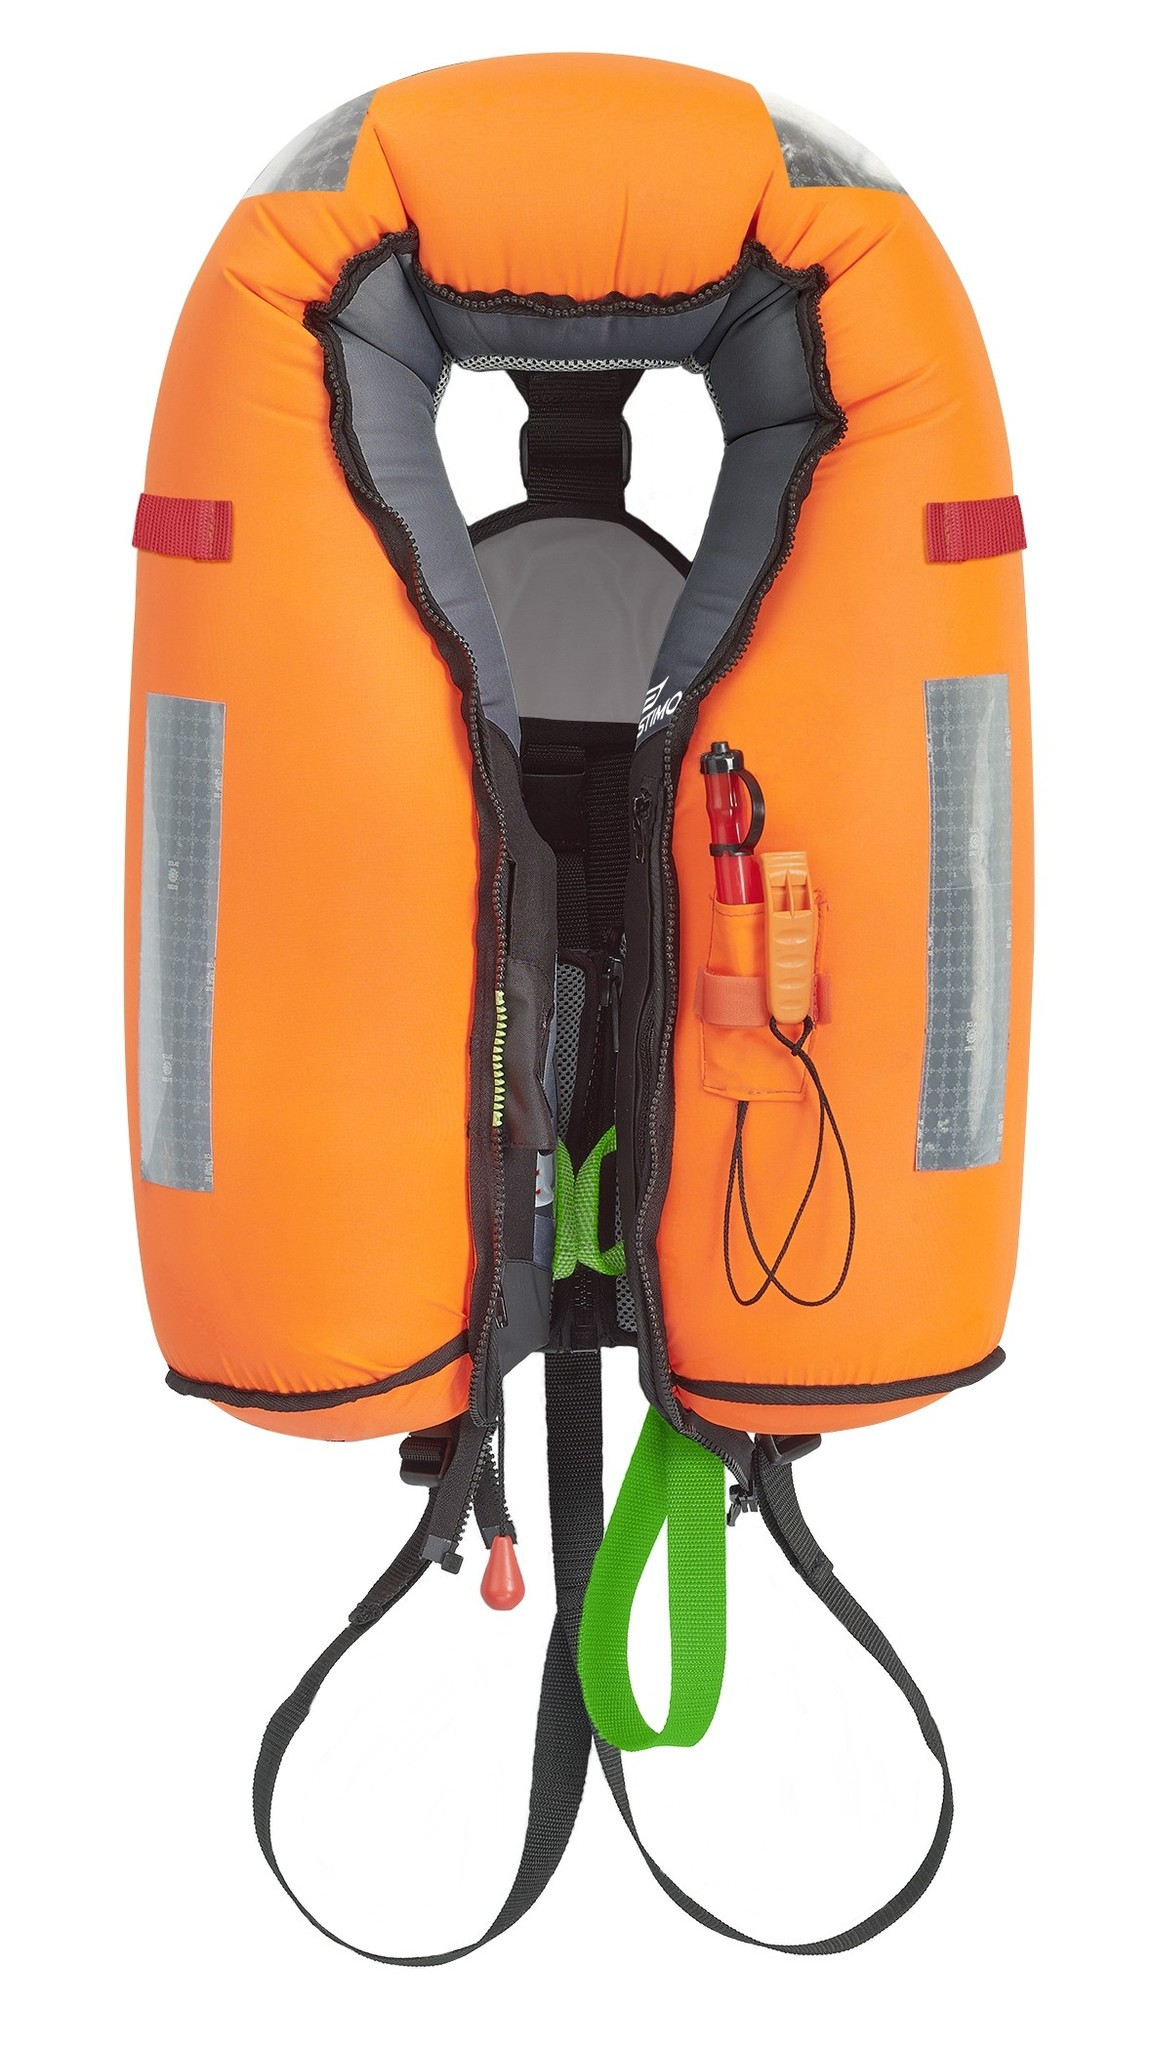 SL180 inflatable lifejacket with harness